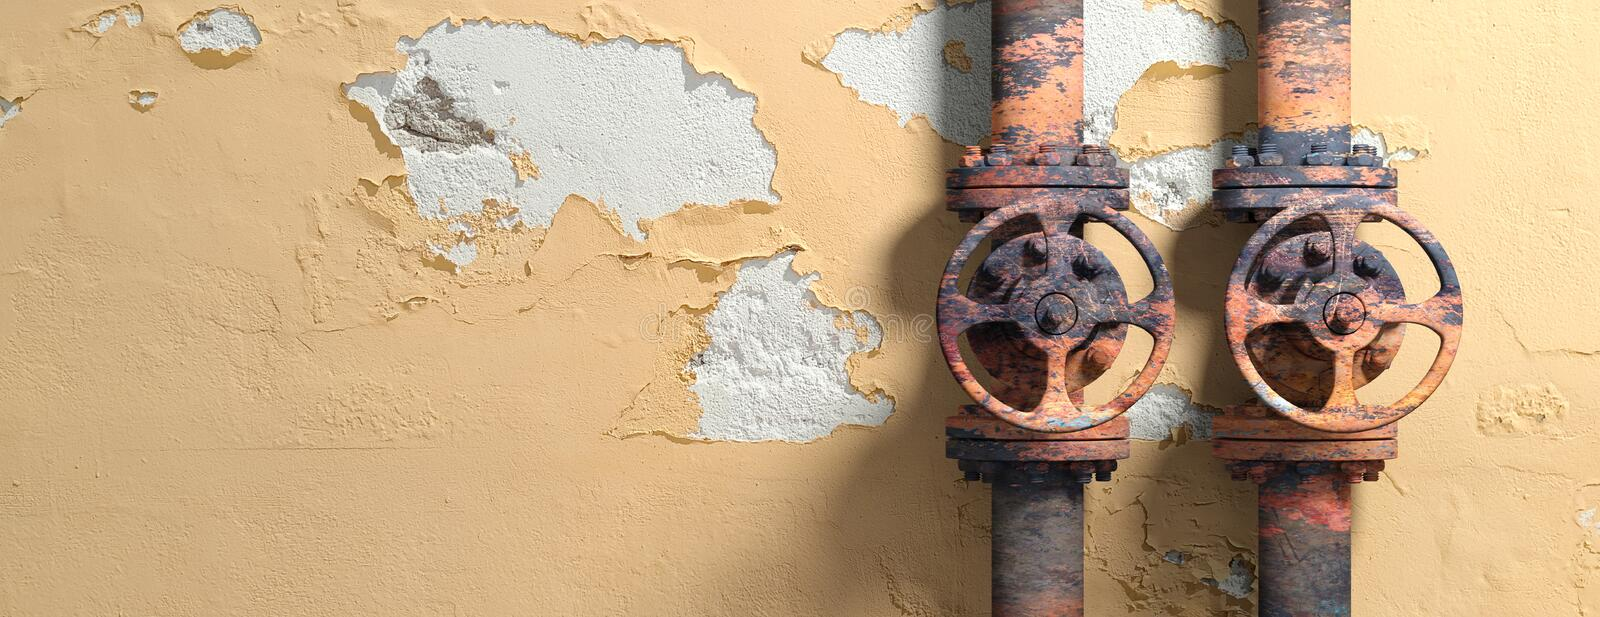 Old industrial pipelines and valves on weathered wall background, banner, copy space. 3d illustration stock illustration